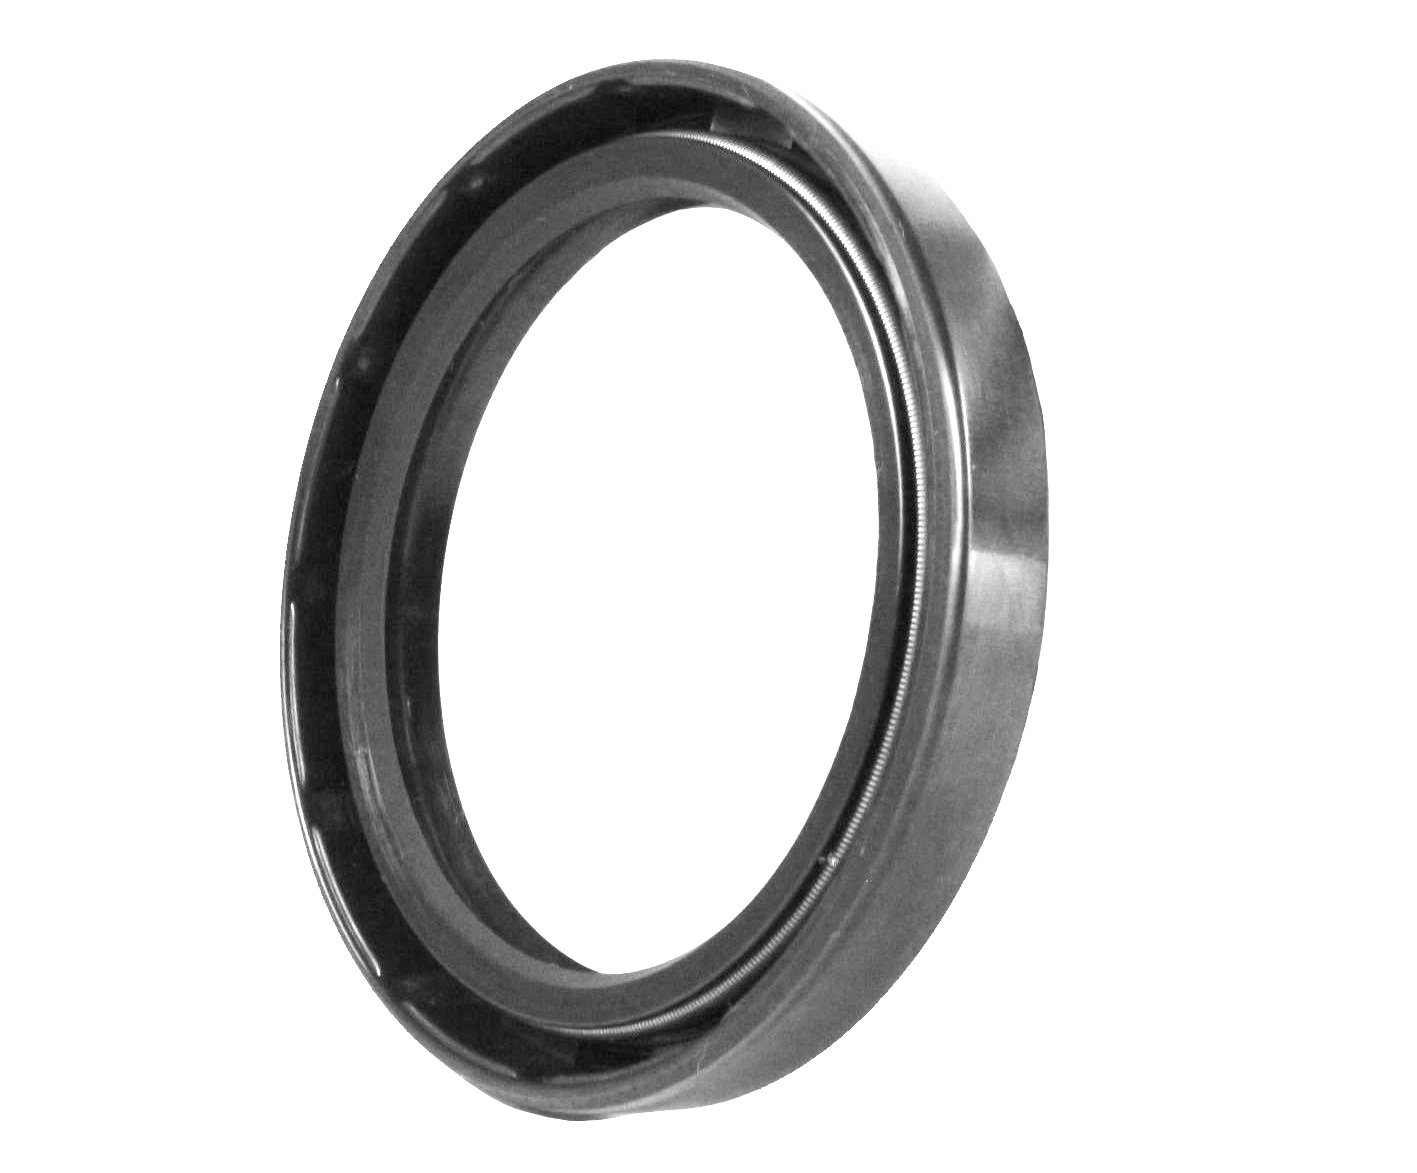 10 PCS Oil Seal 55X72X10 55mmX72mmX10mm 2.165x2.835x0.394 Oil Seal Grease Seal TC  EAI Double Lip w//Garter Spring Single Metal Case w//Nitrile Rubber Coating